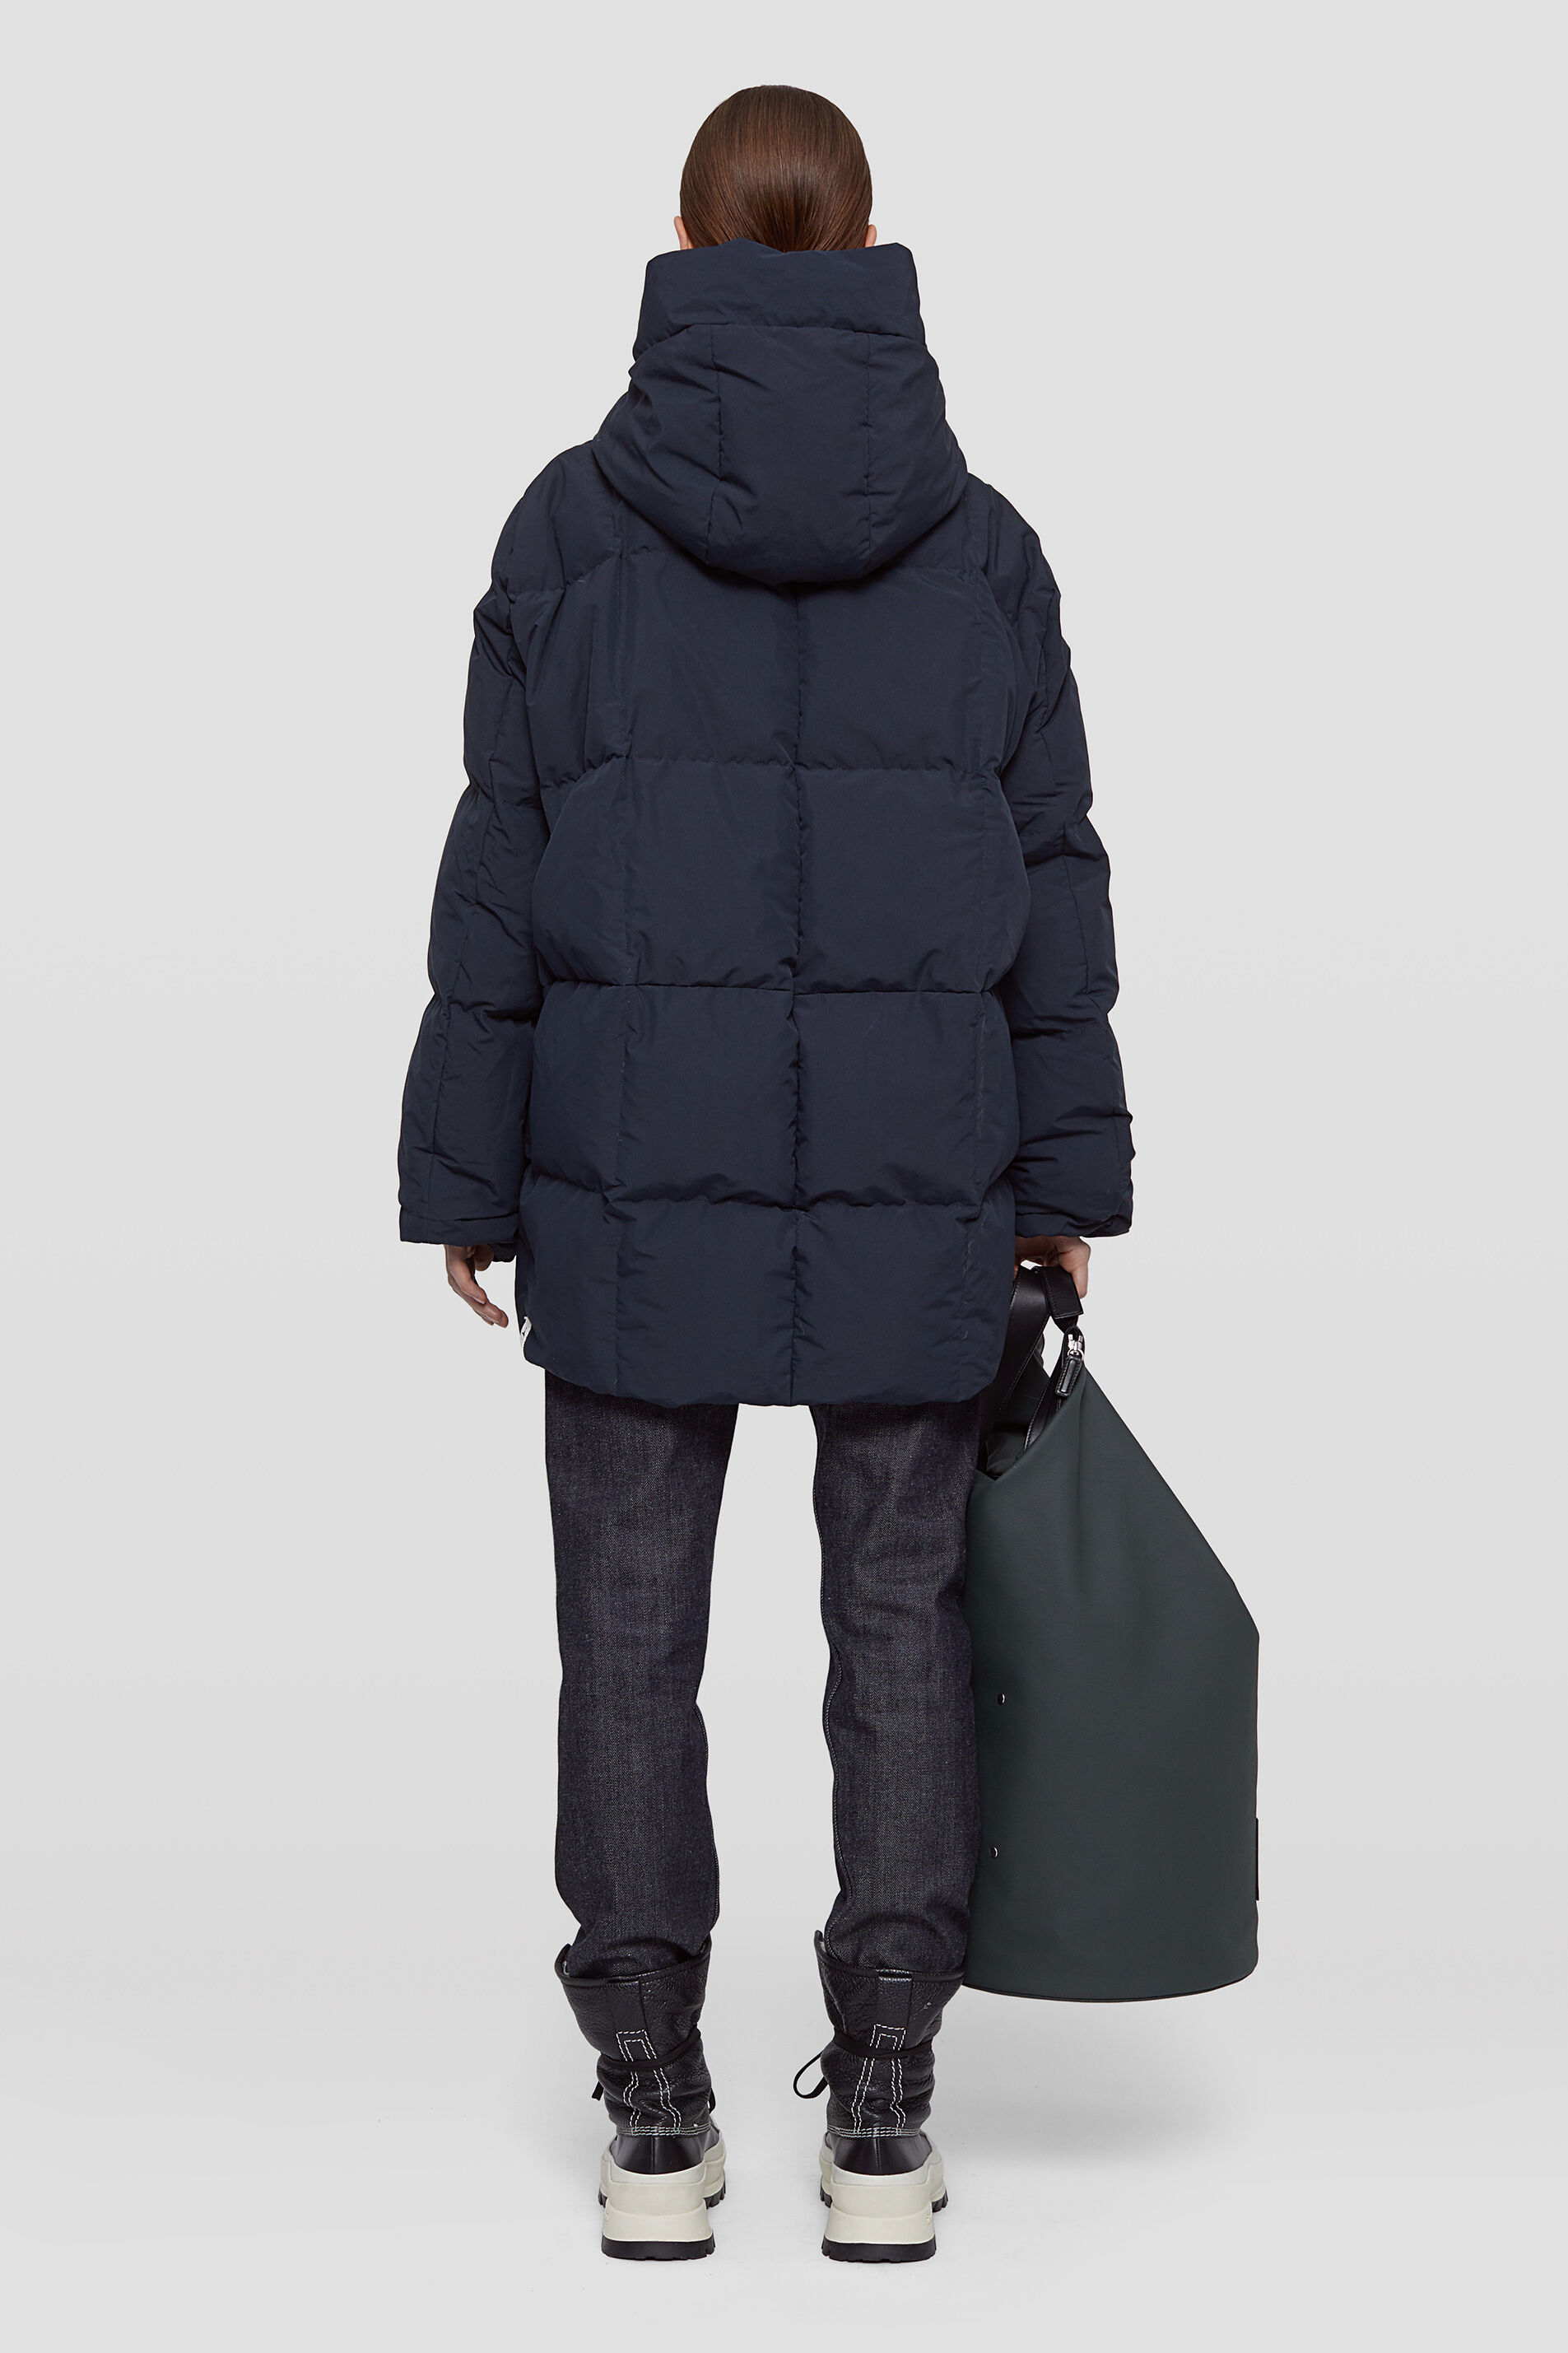 Quilted Down Jacket, dark blue, large